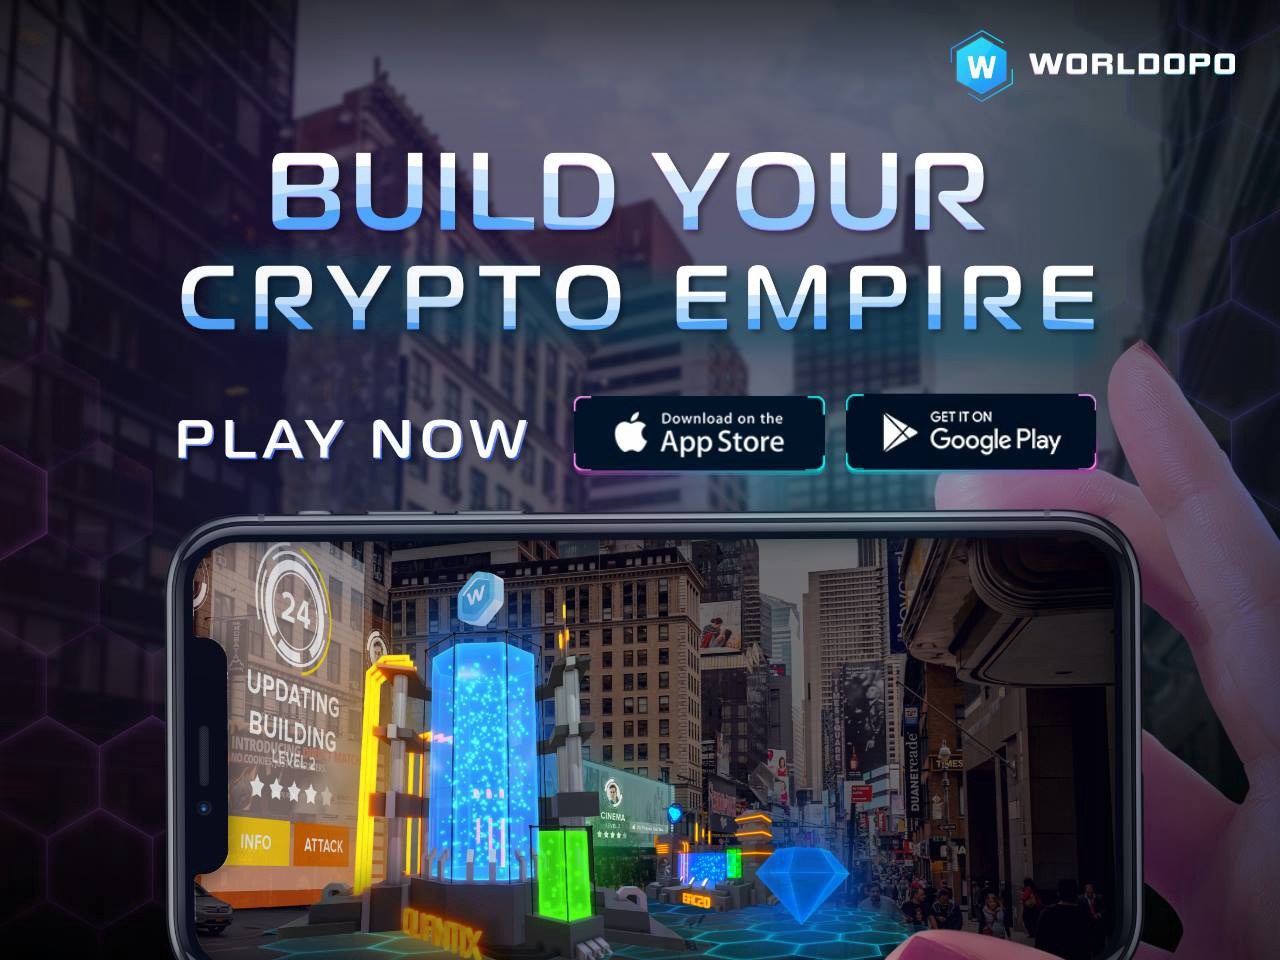 Worldopo: Mobile game with Blockchain, AR, Geopositioning